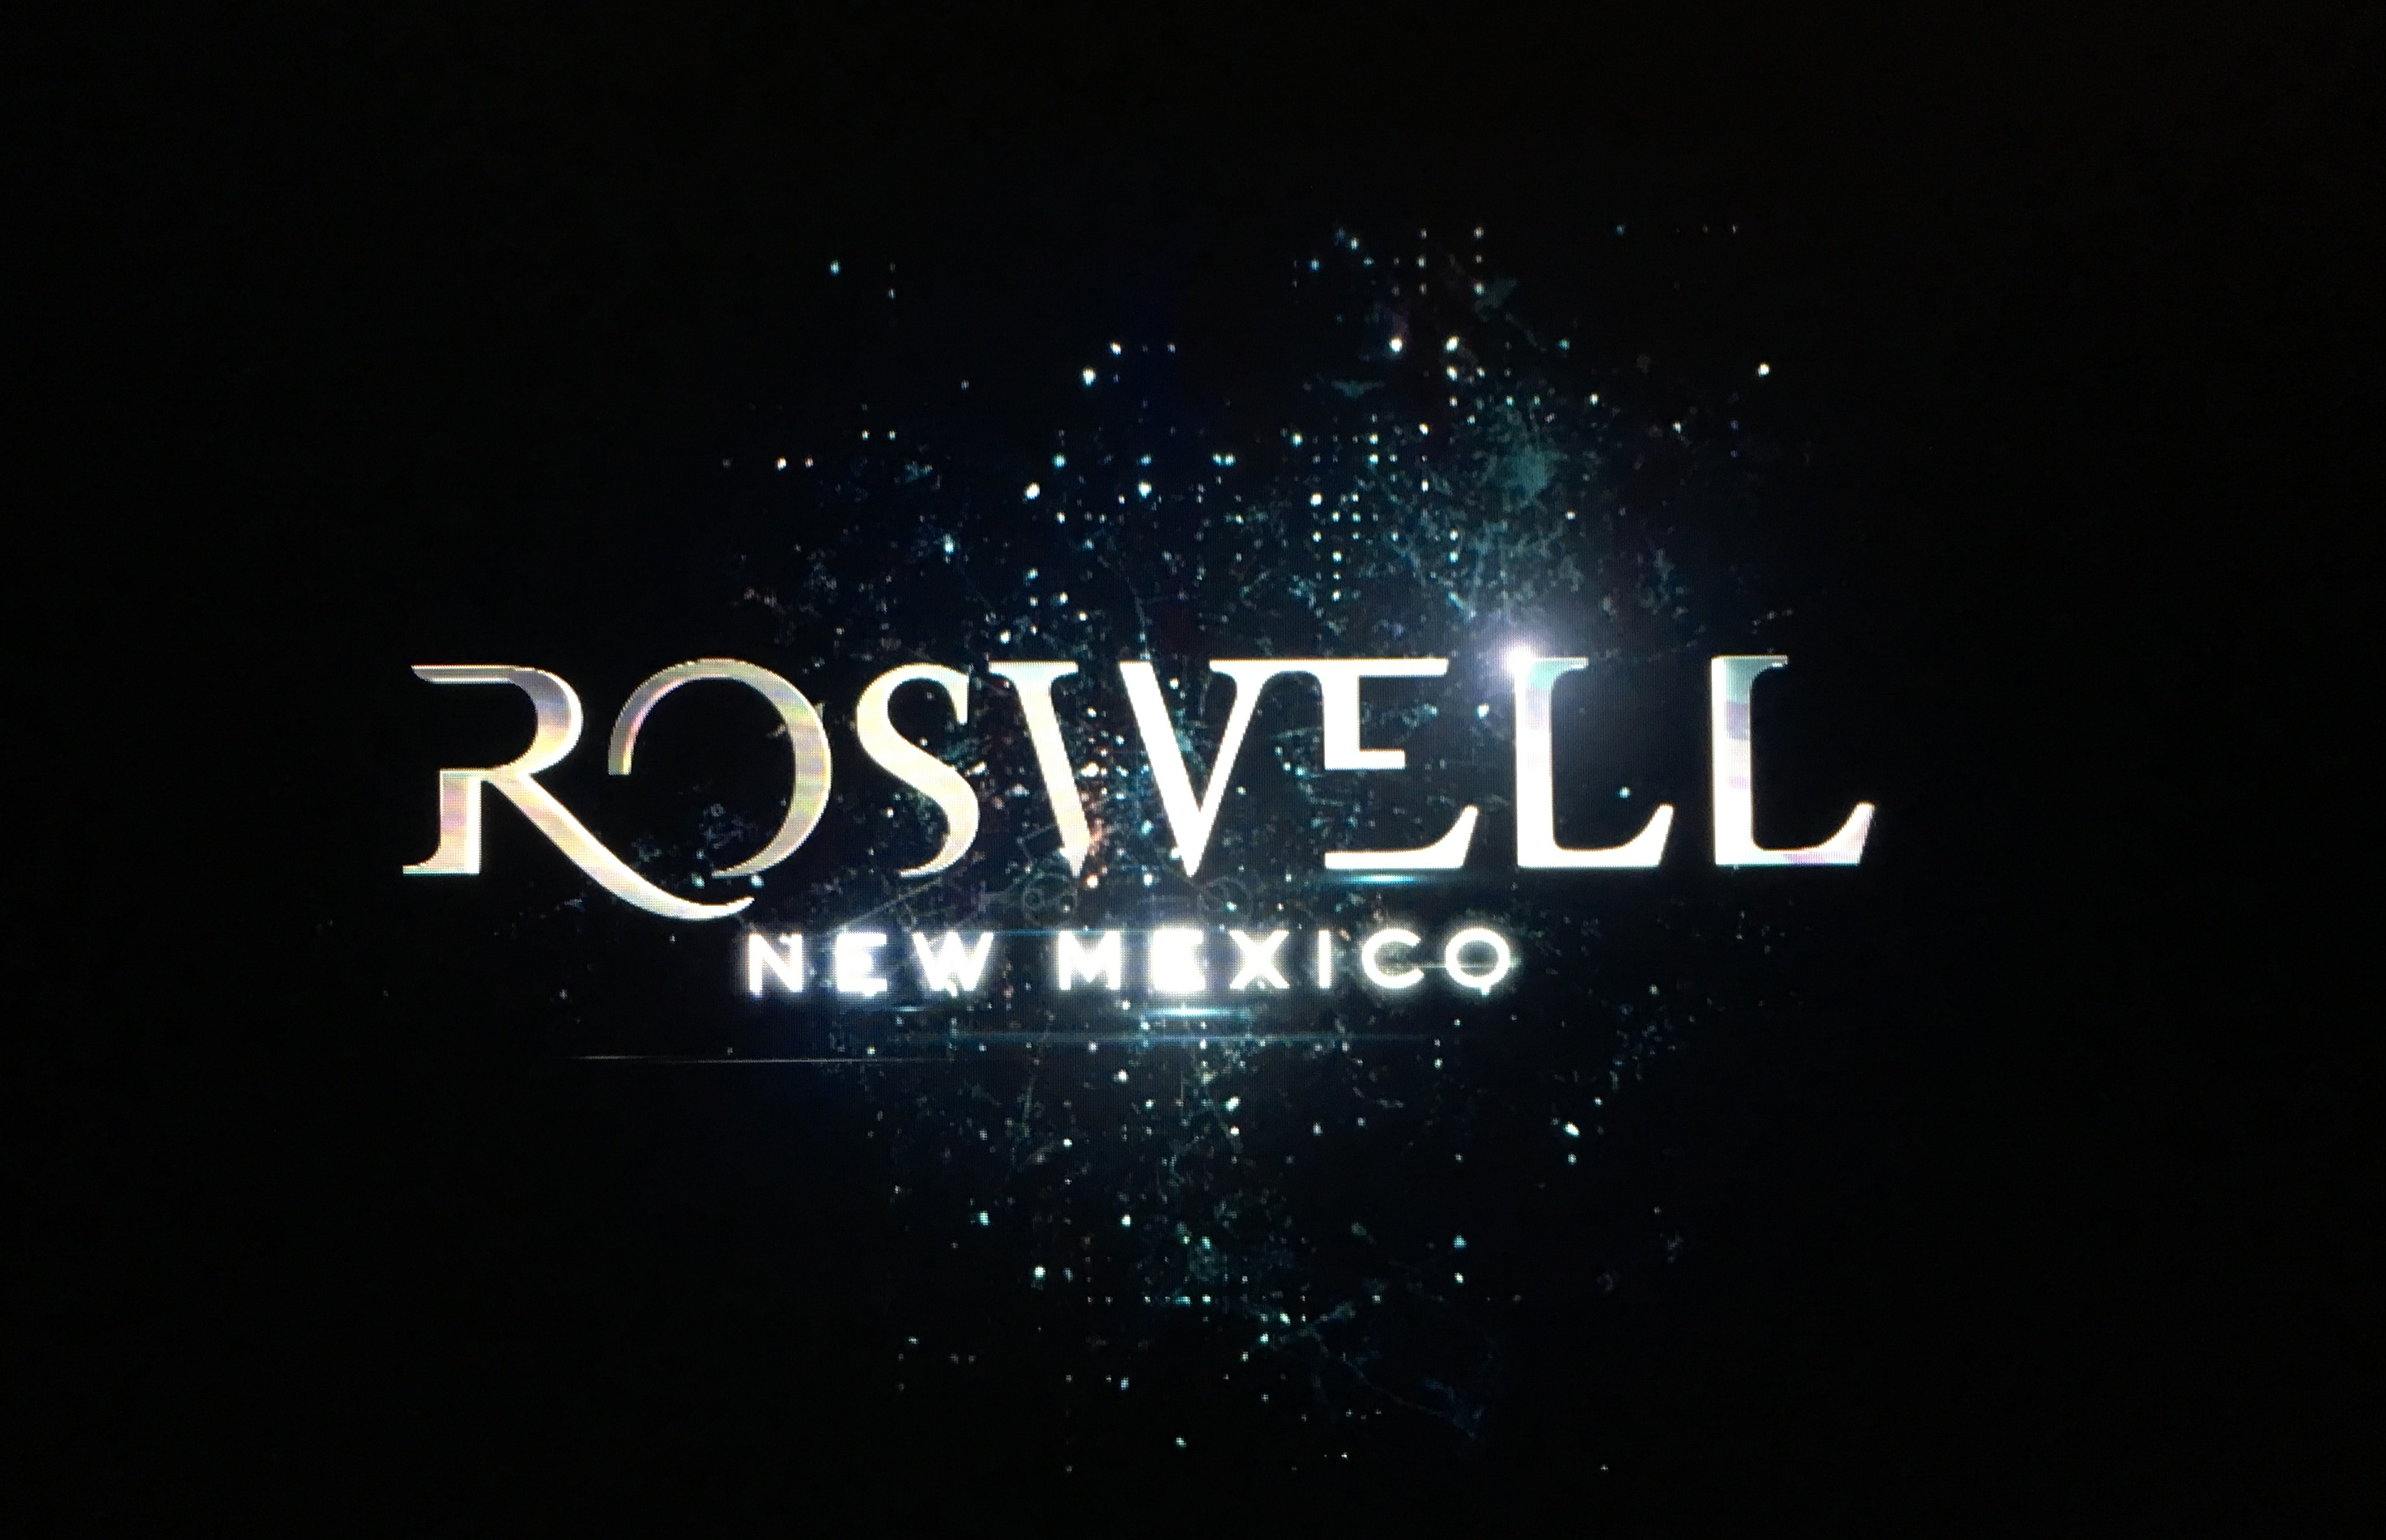 roswellnewmexico; roswell; roswellnm